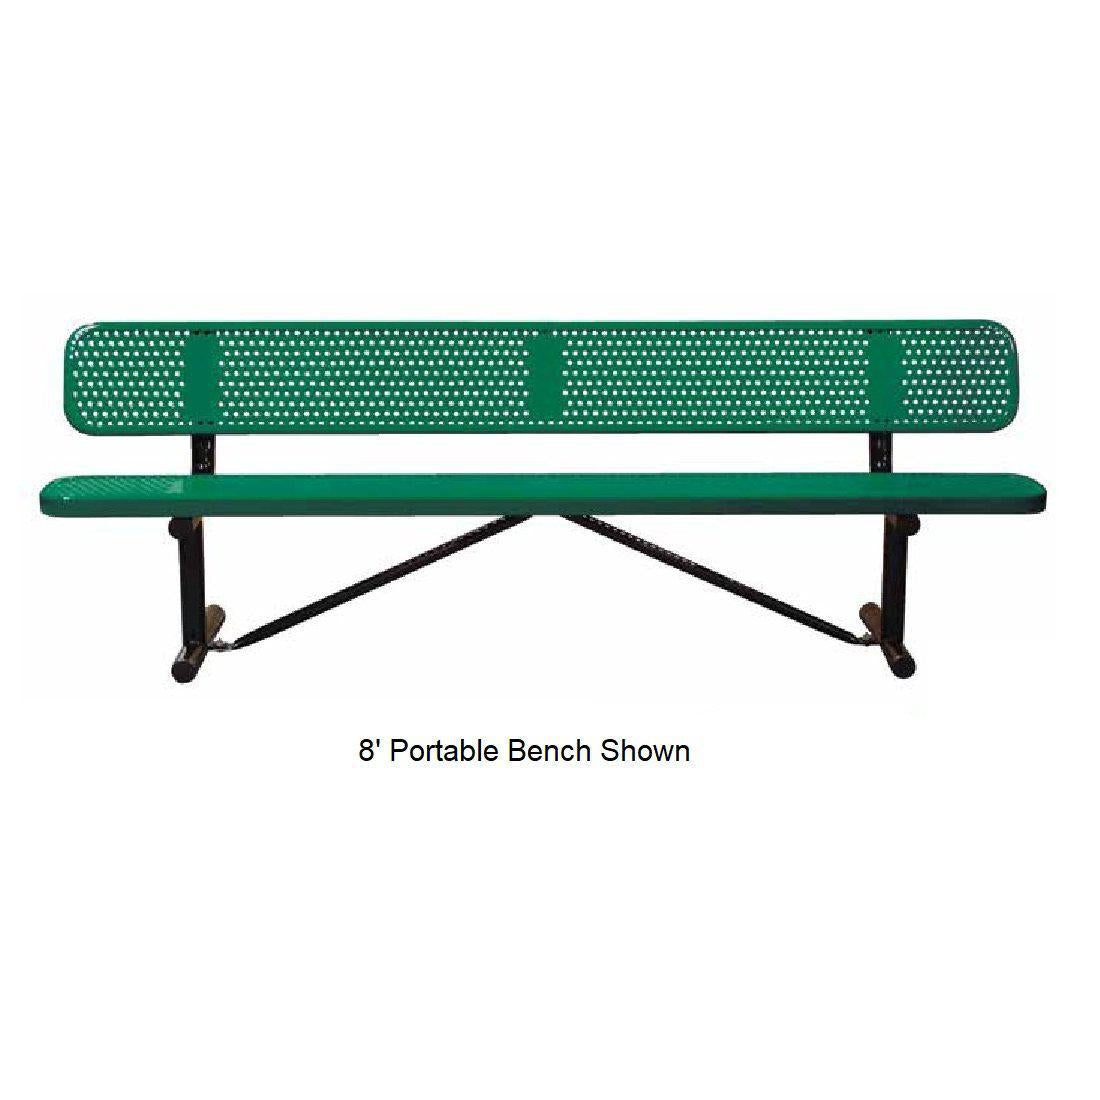 15' Standard Perforated Bench With Back, Surface Mount